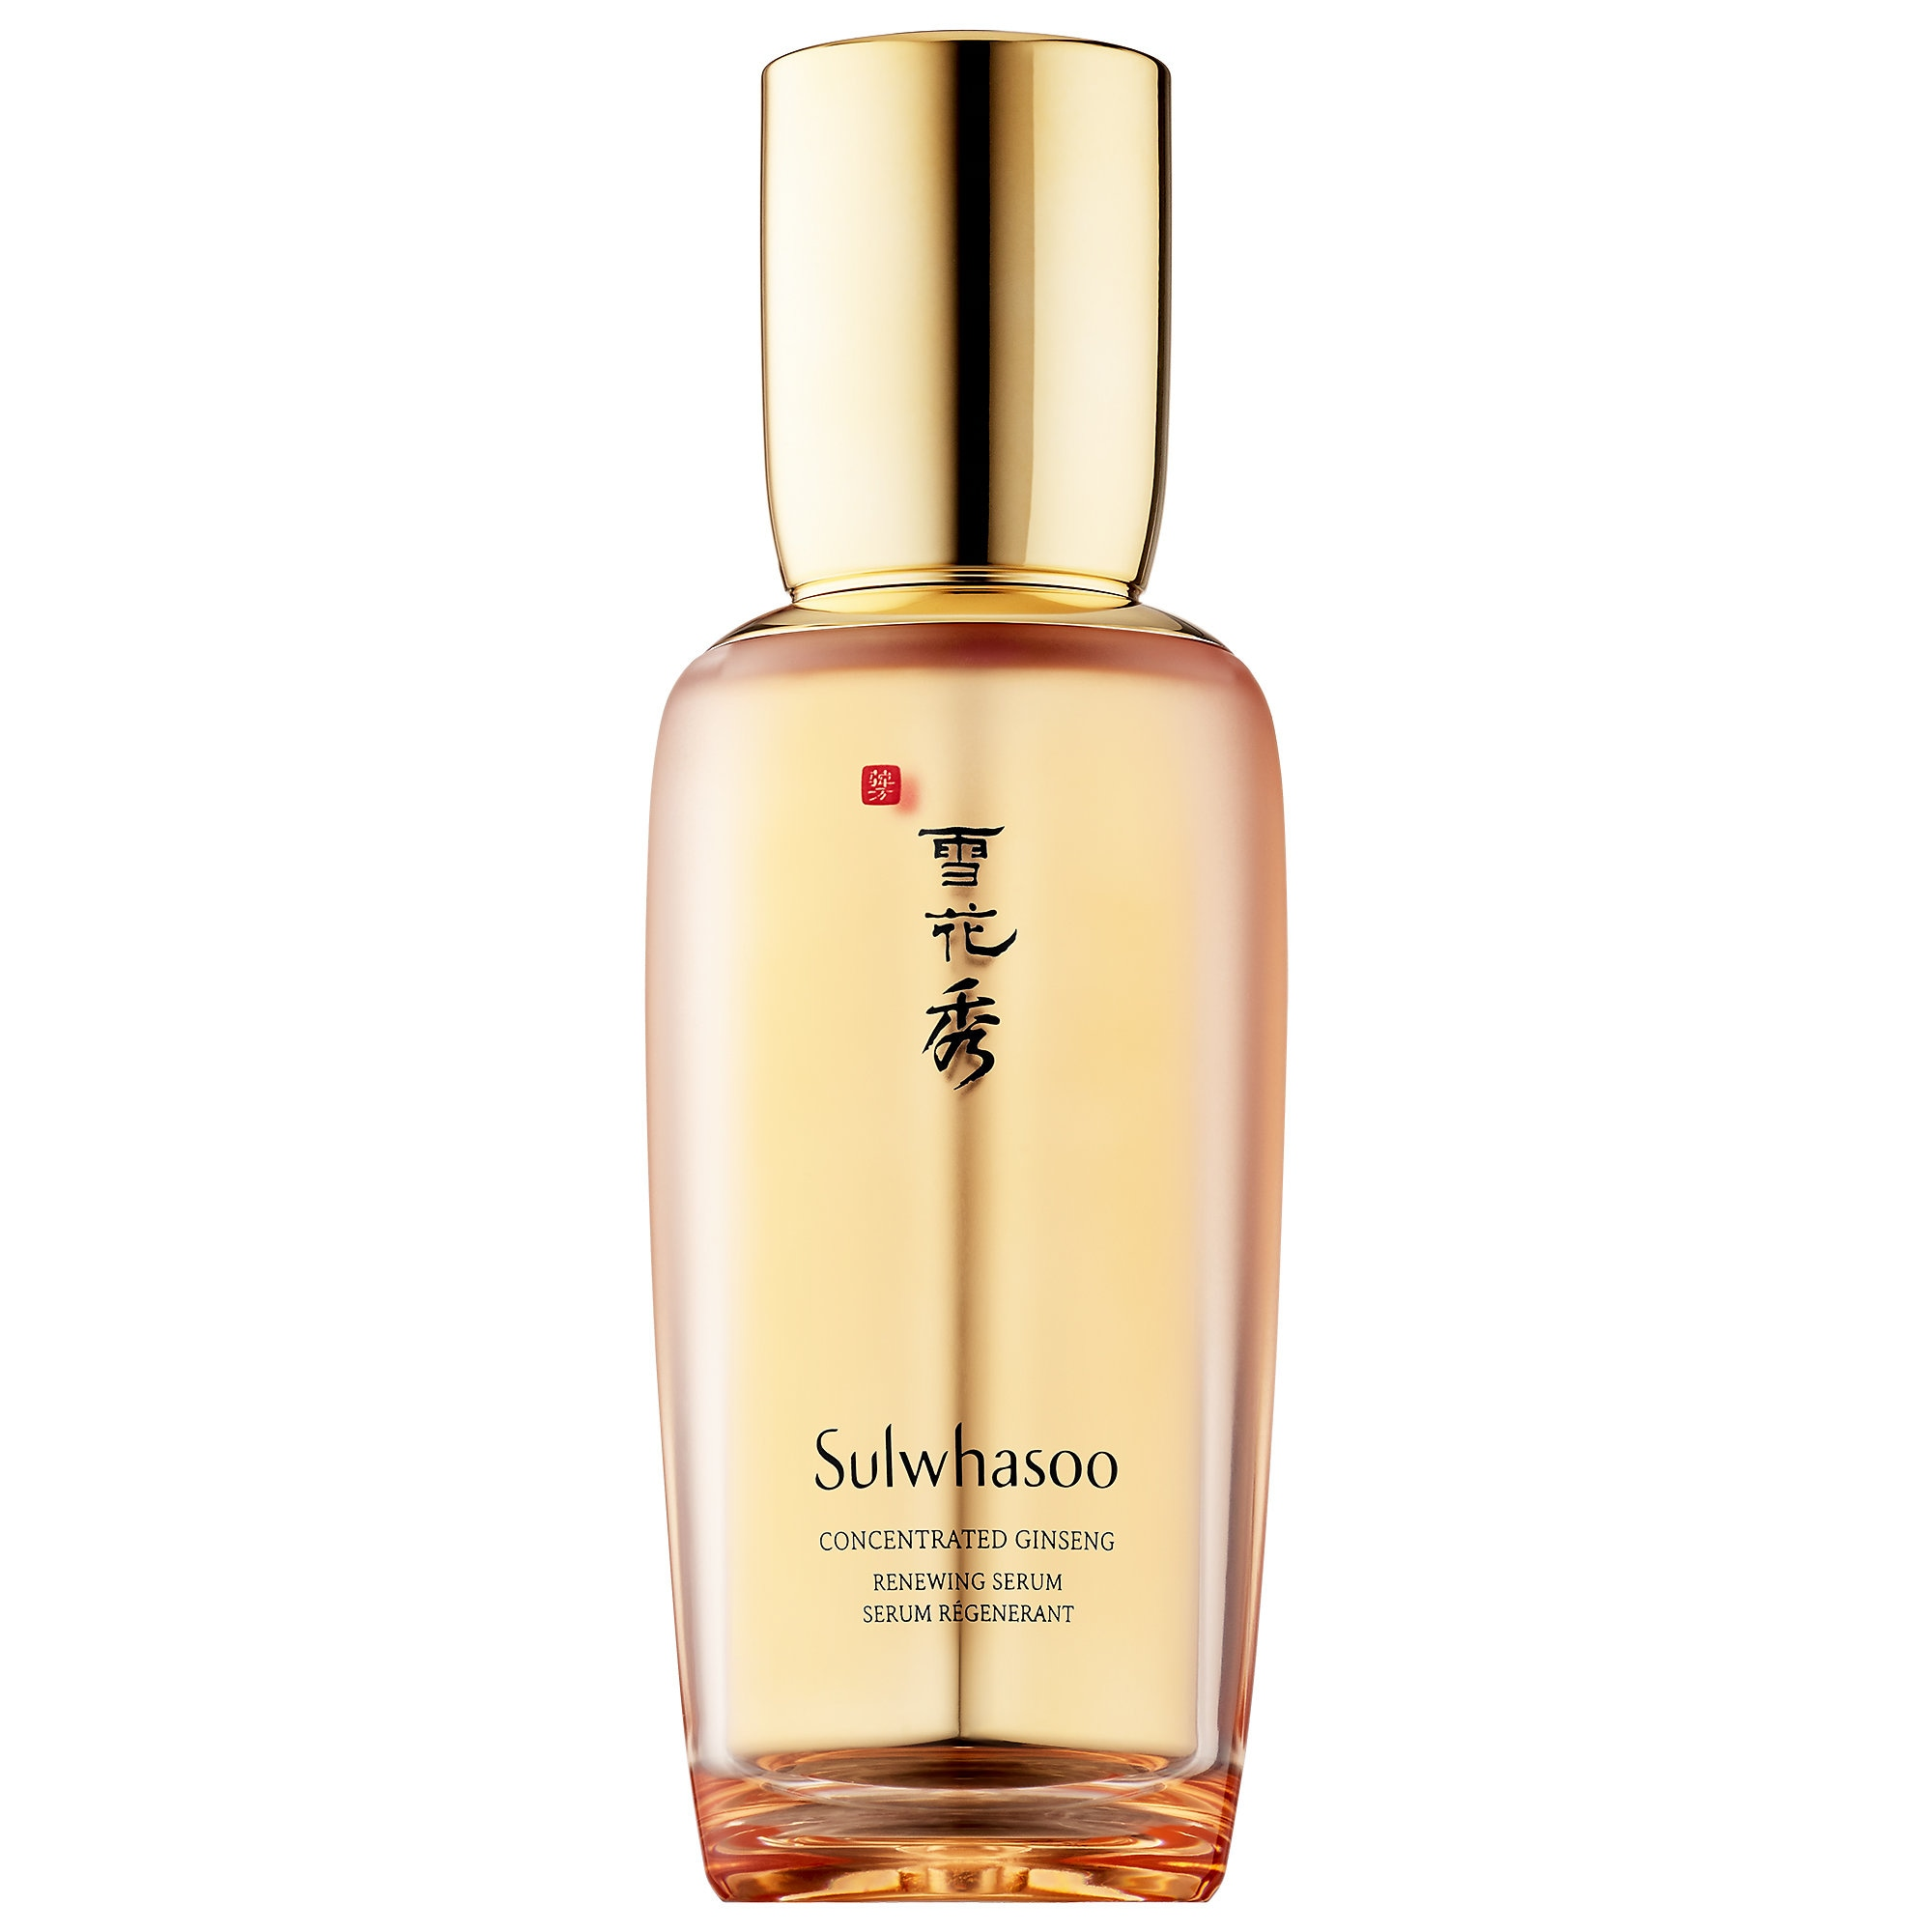 Sulwhasoo - Concentrated Ginseng Renewing Serum